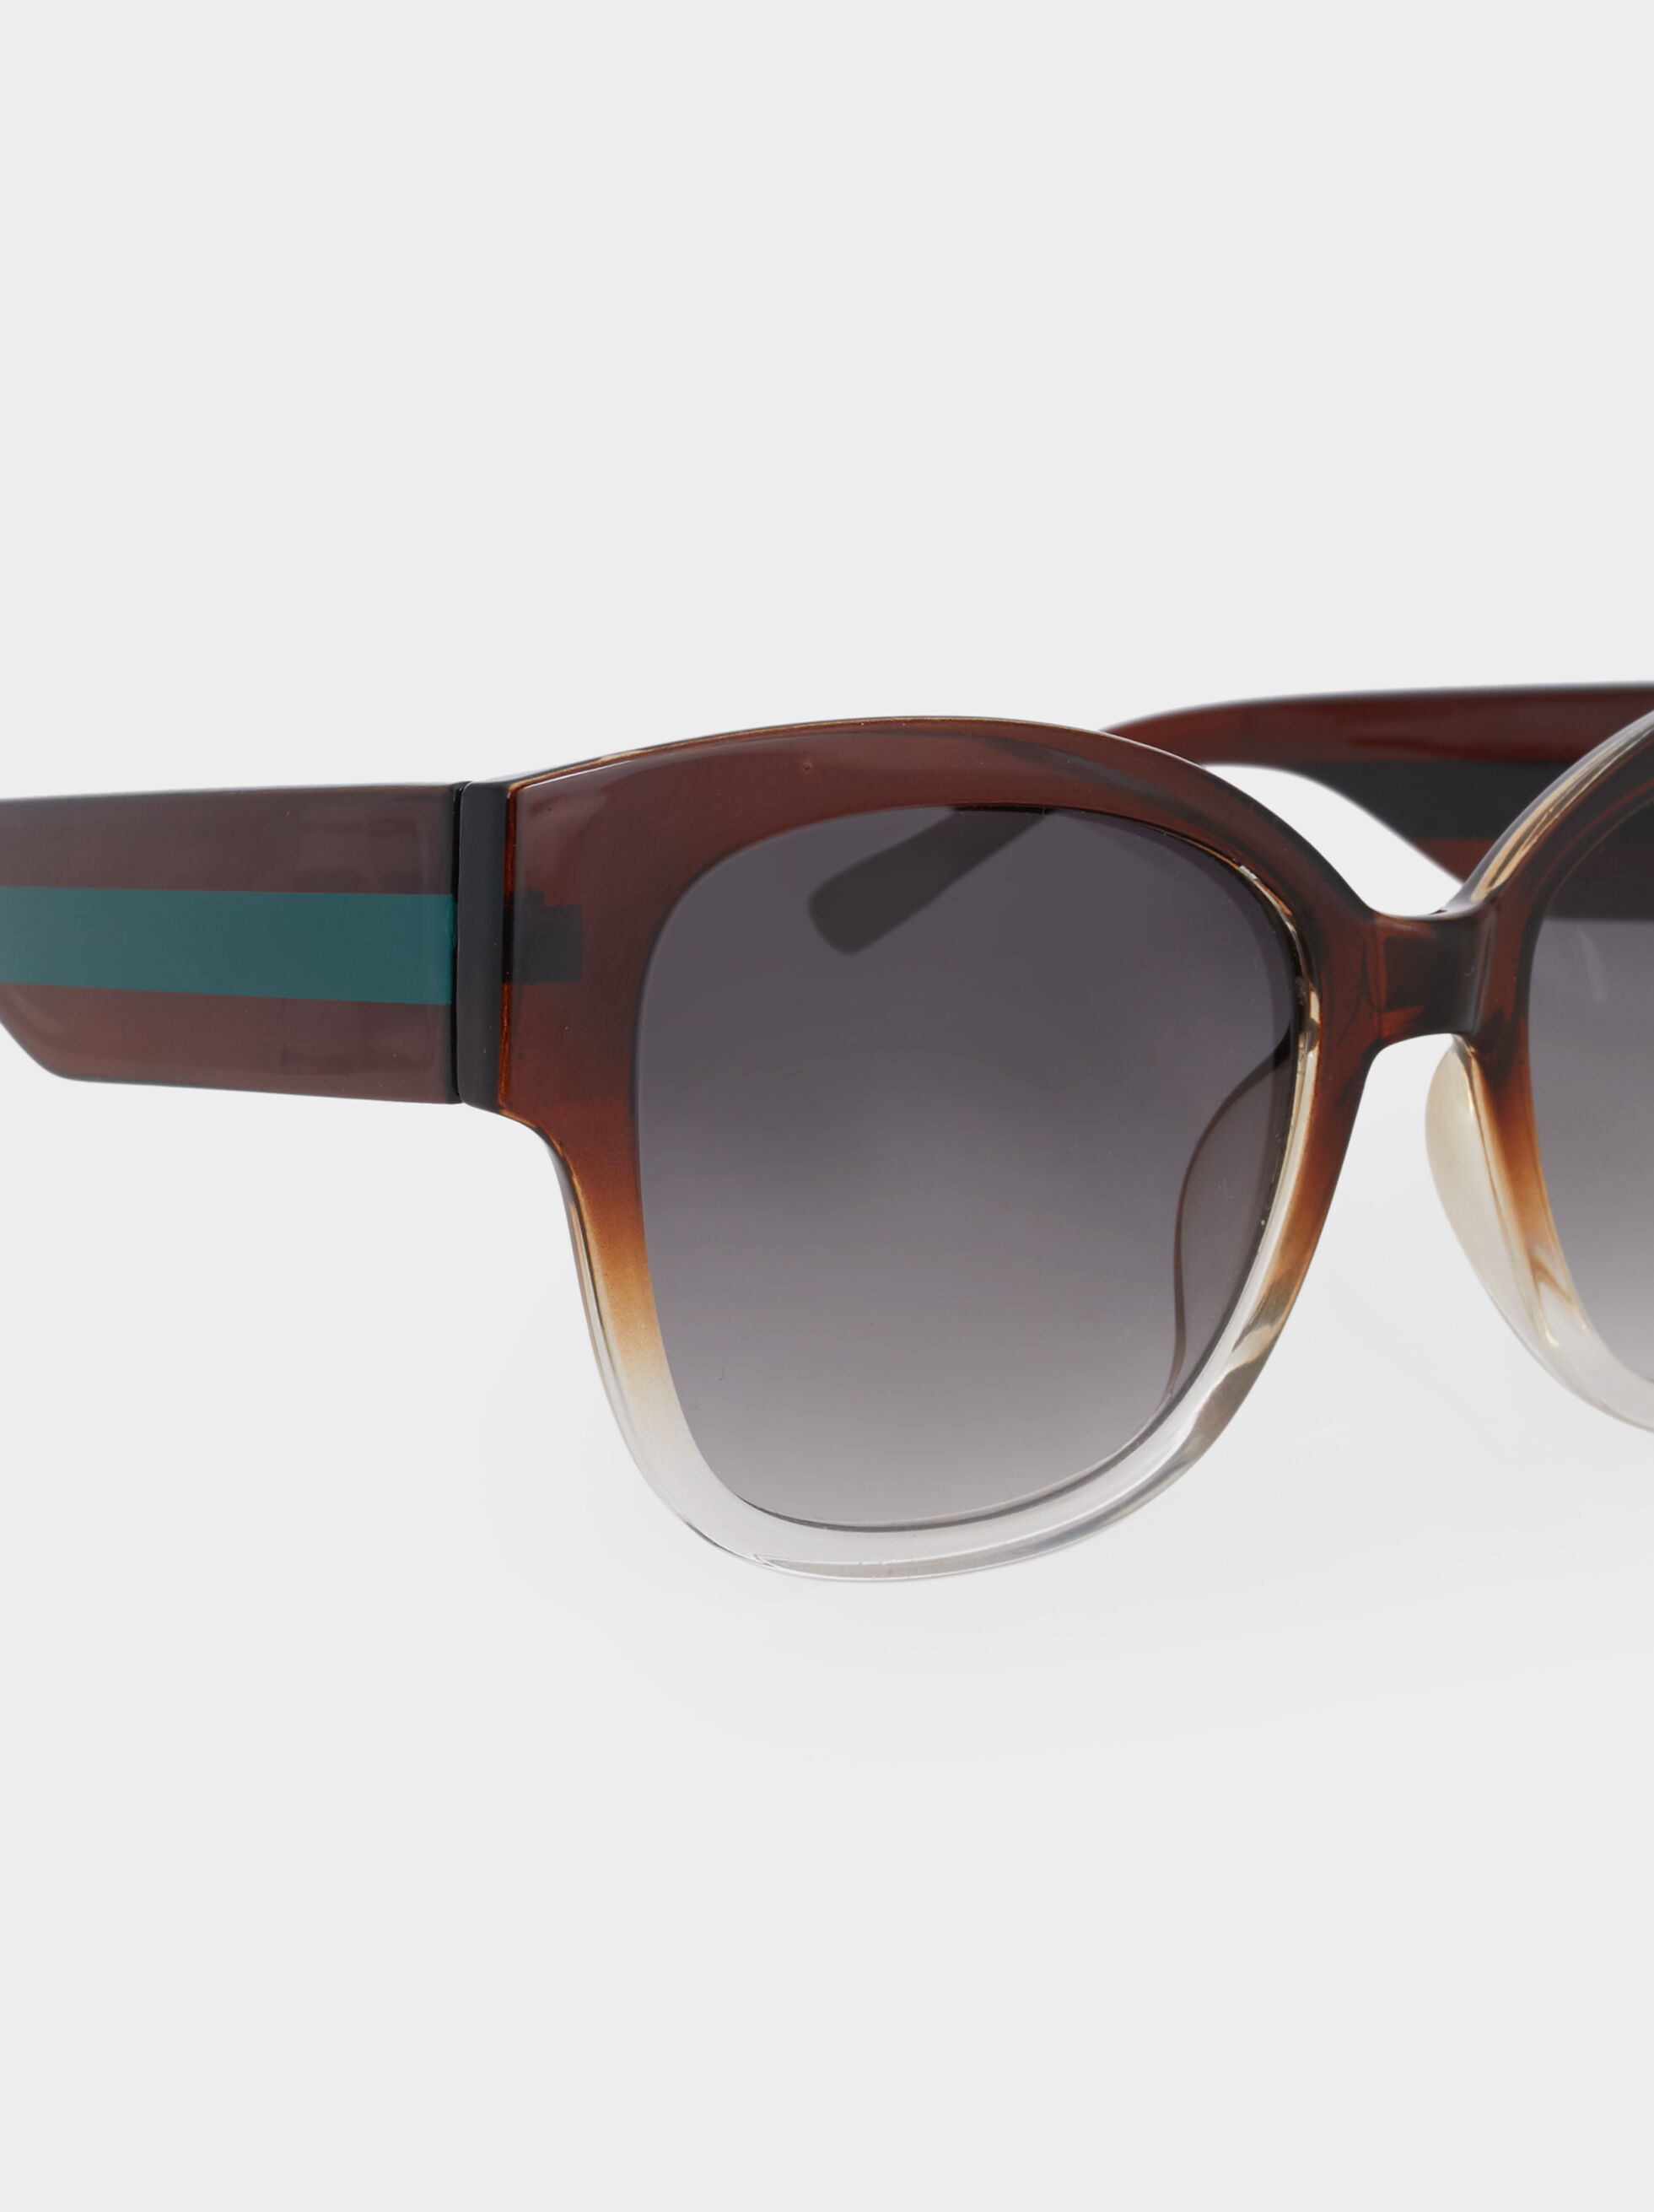 Resin Sunglasses, Brown, hi-res